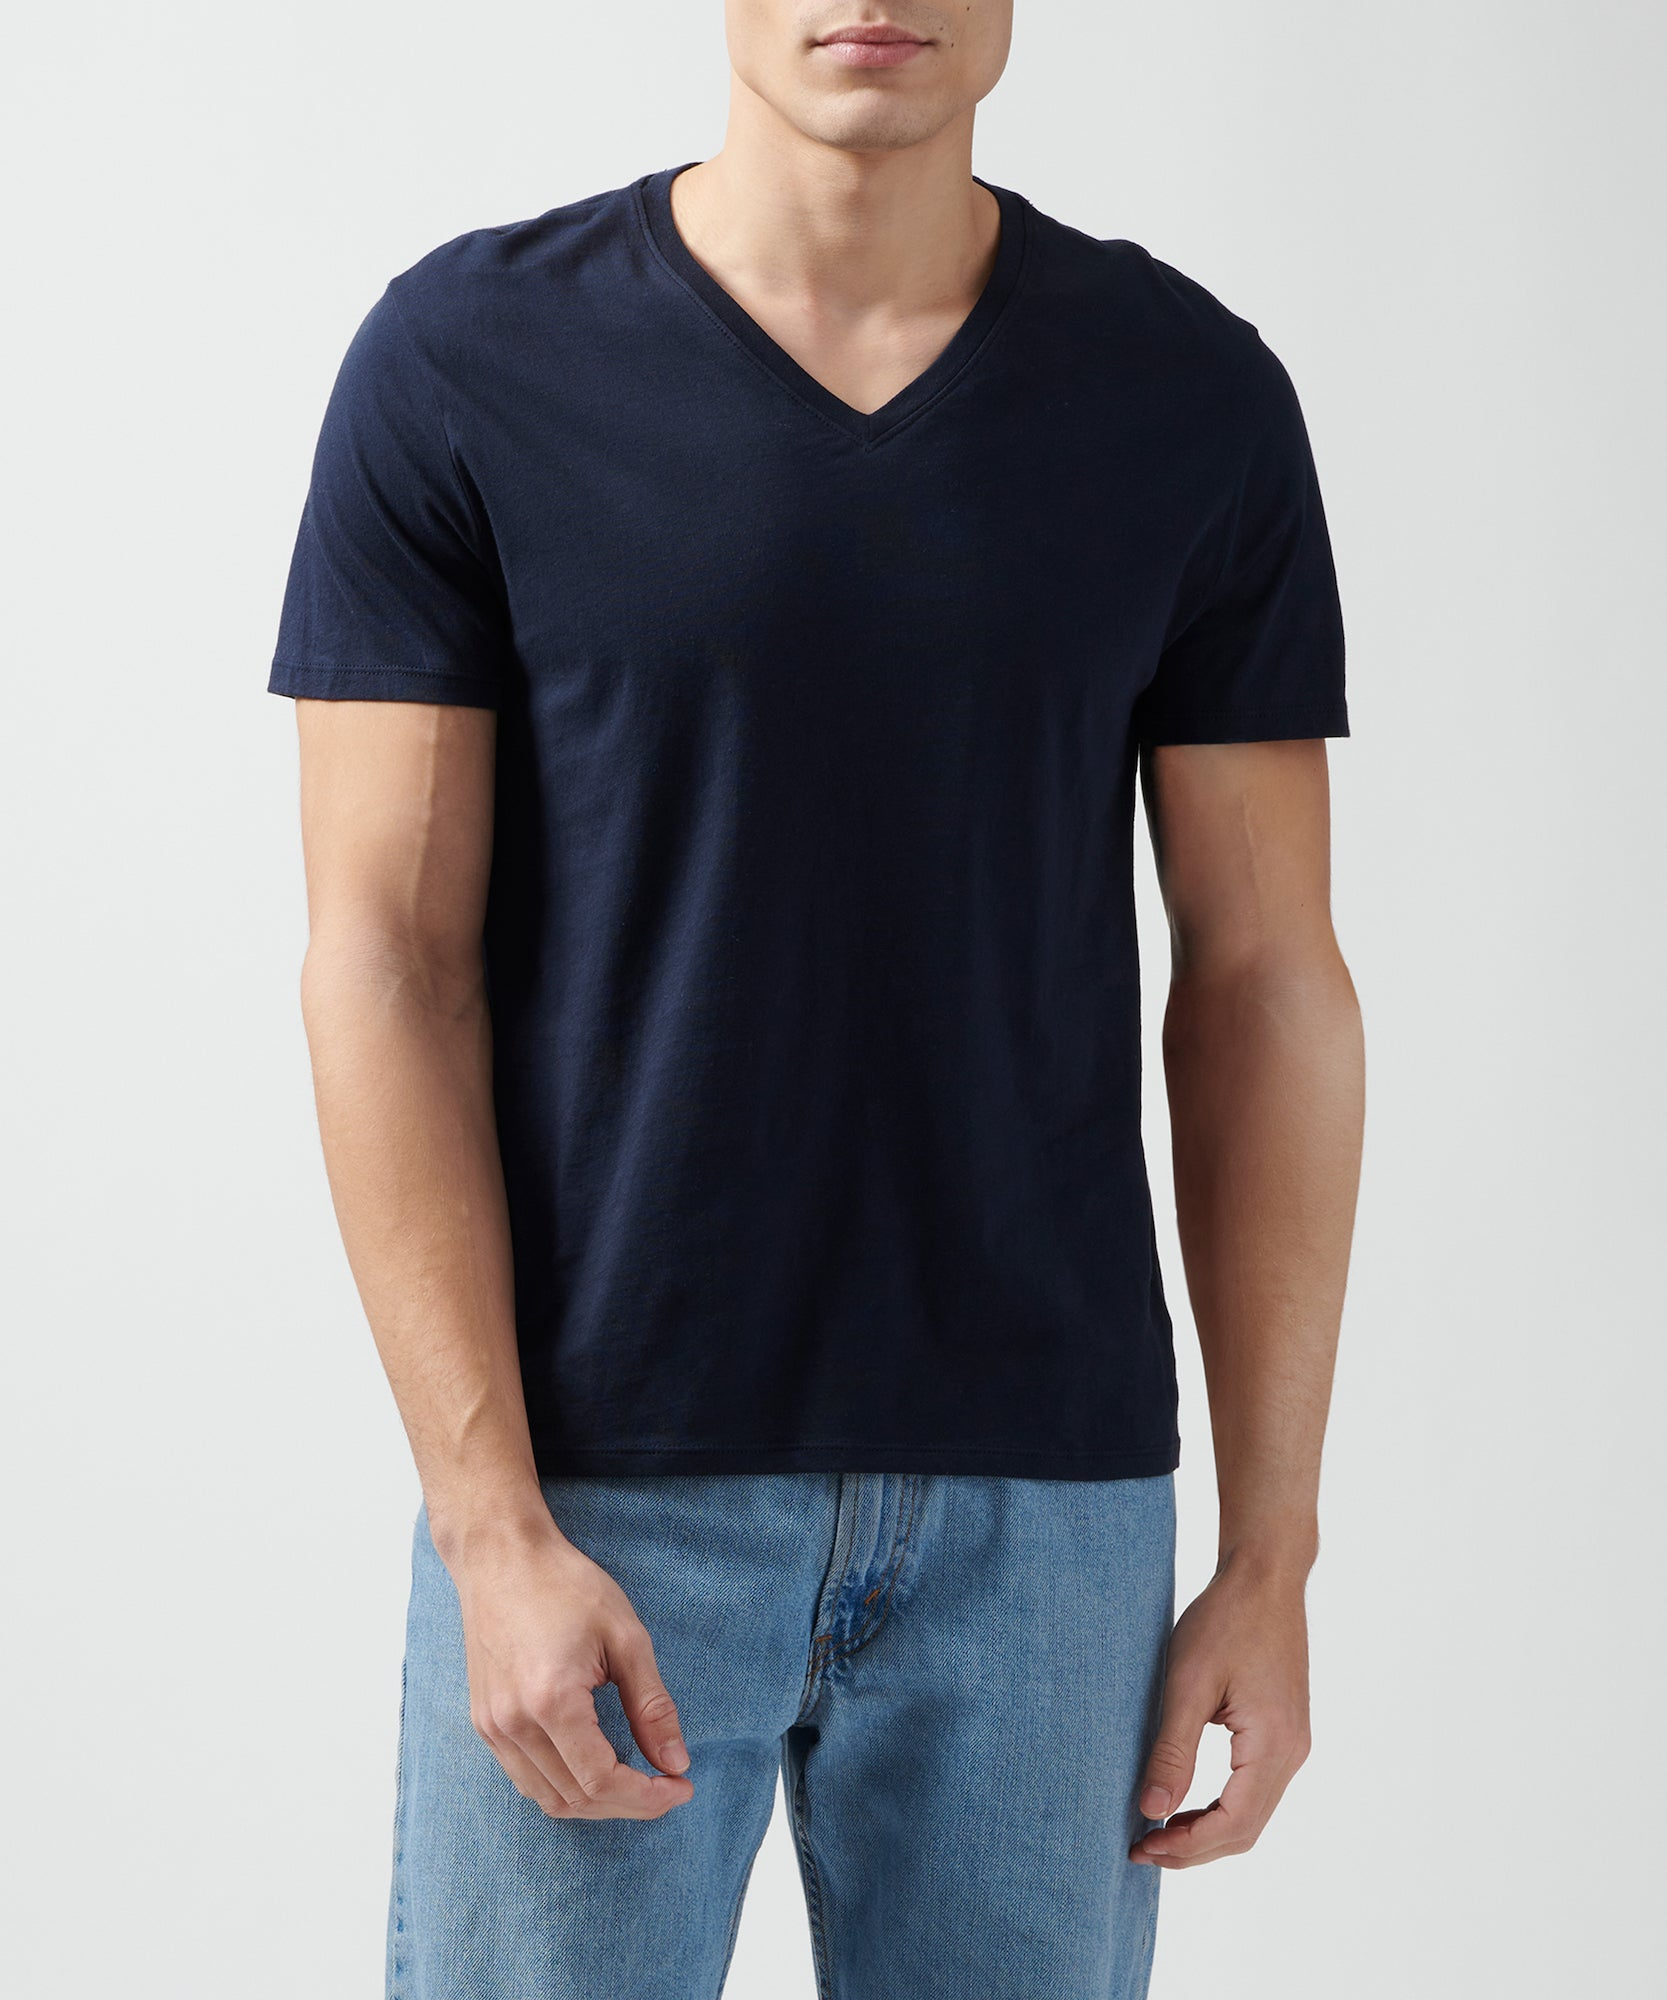 Midnight Classic Jersey V-Neck Tee - Men's Cotton Short Sleeve T-shirt by ATM Anthony Thomas Melillo